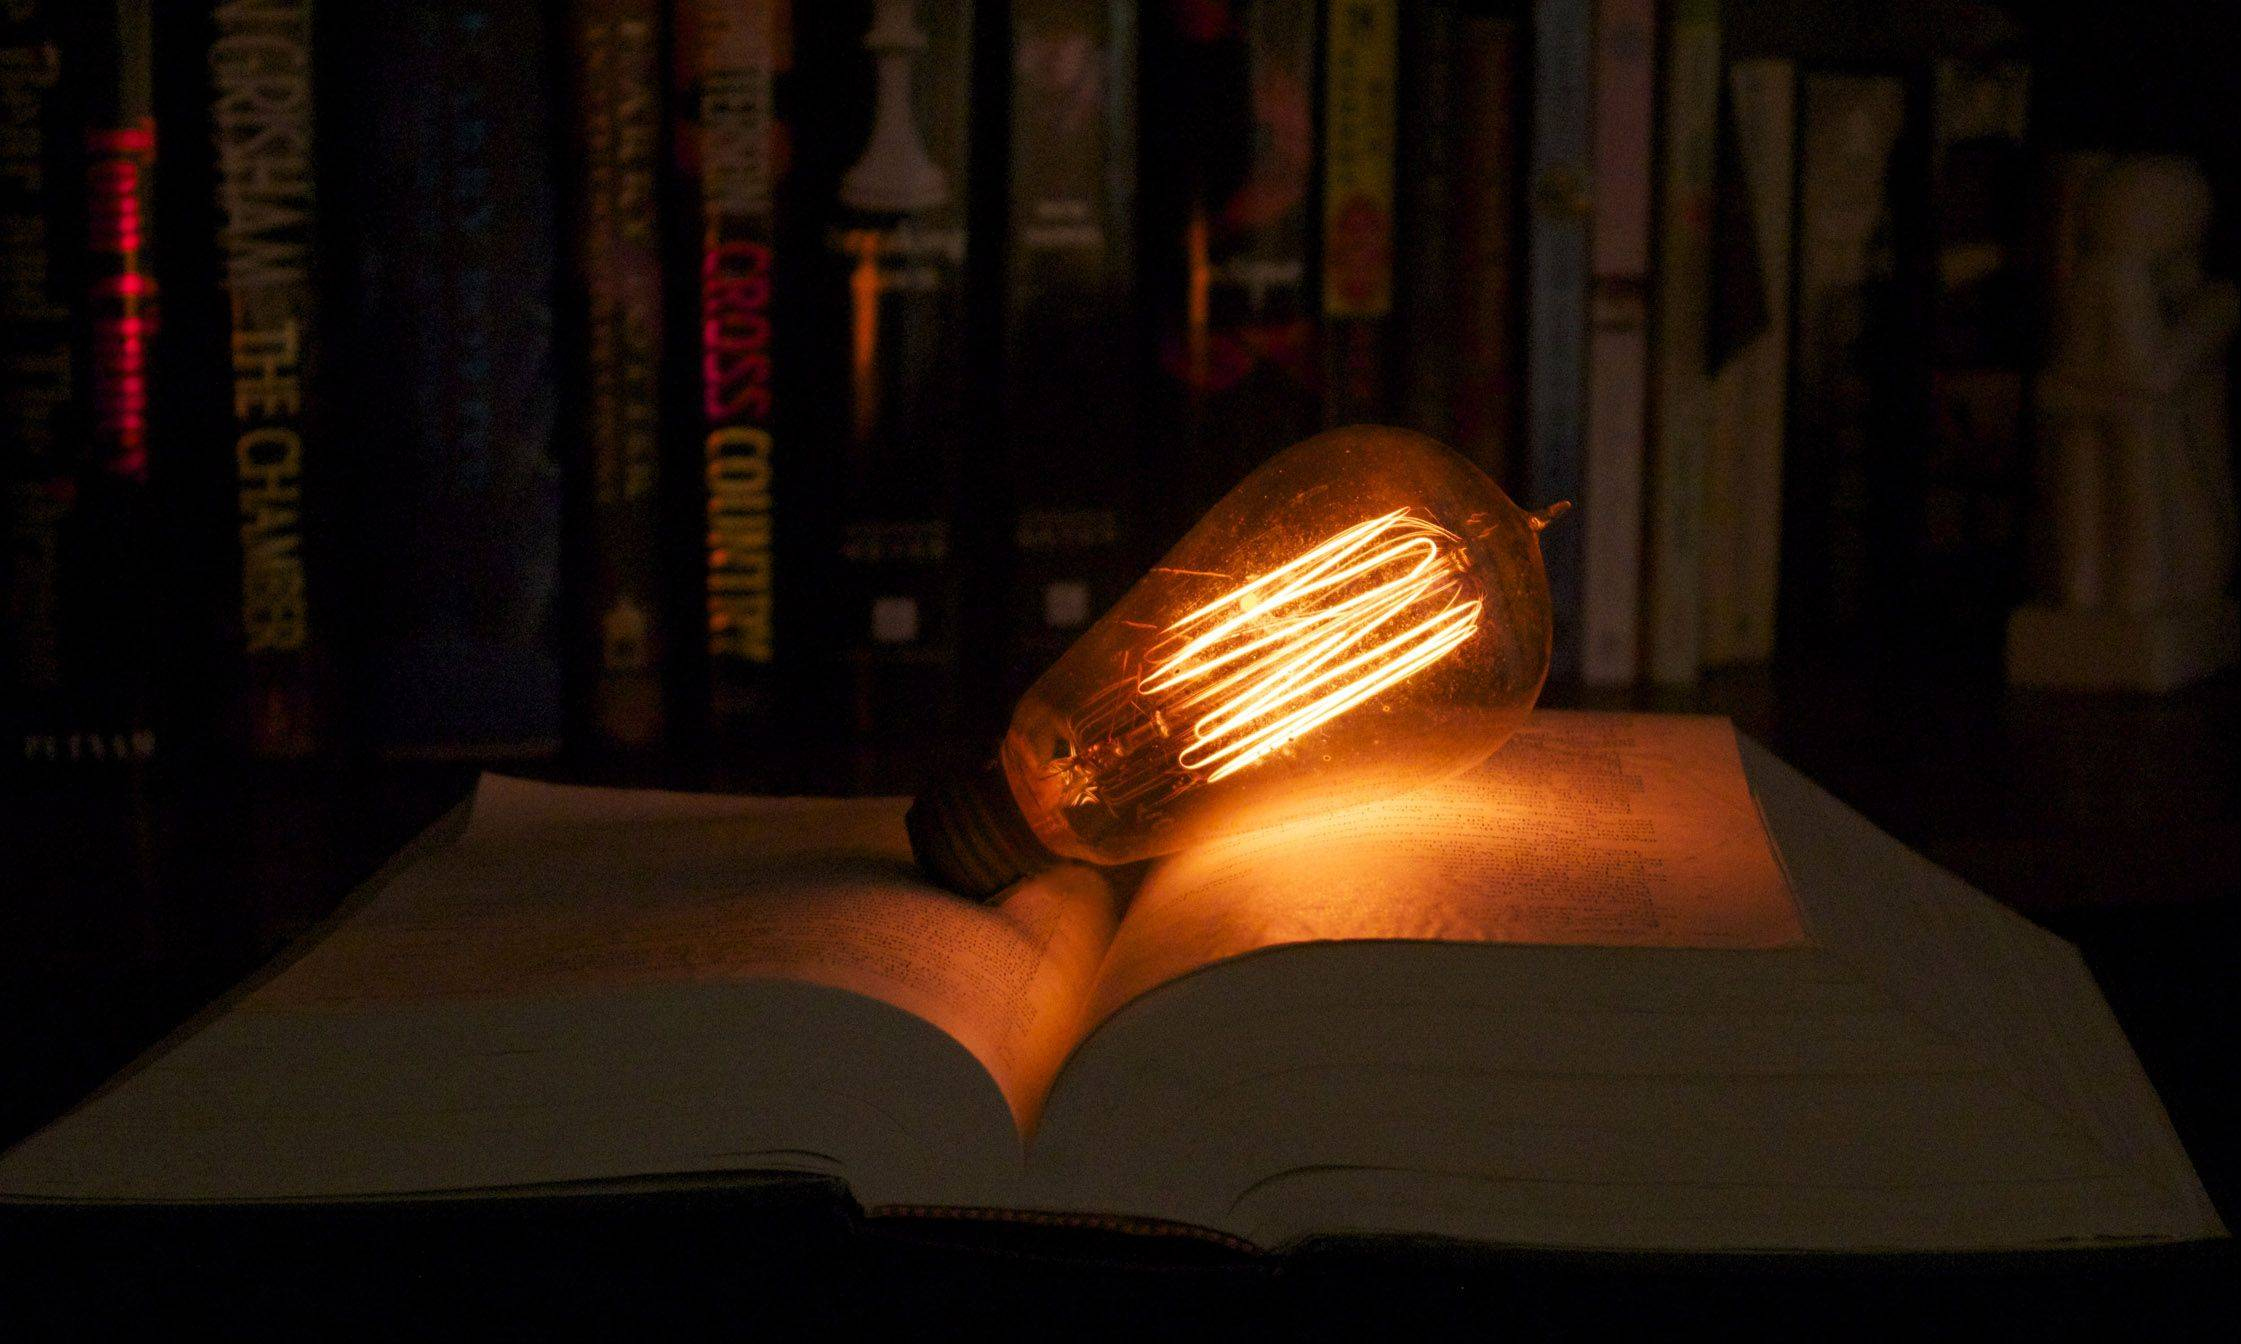 The filaments of a very old light bulb glow as it is left on a book, powered using an 18-volt transformer.